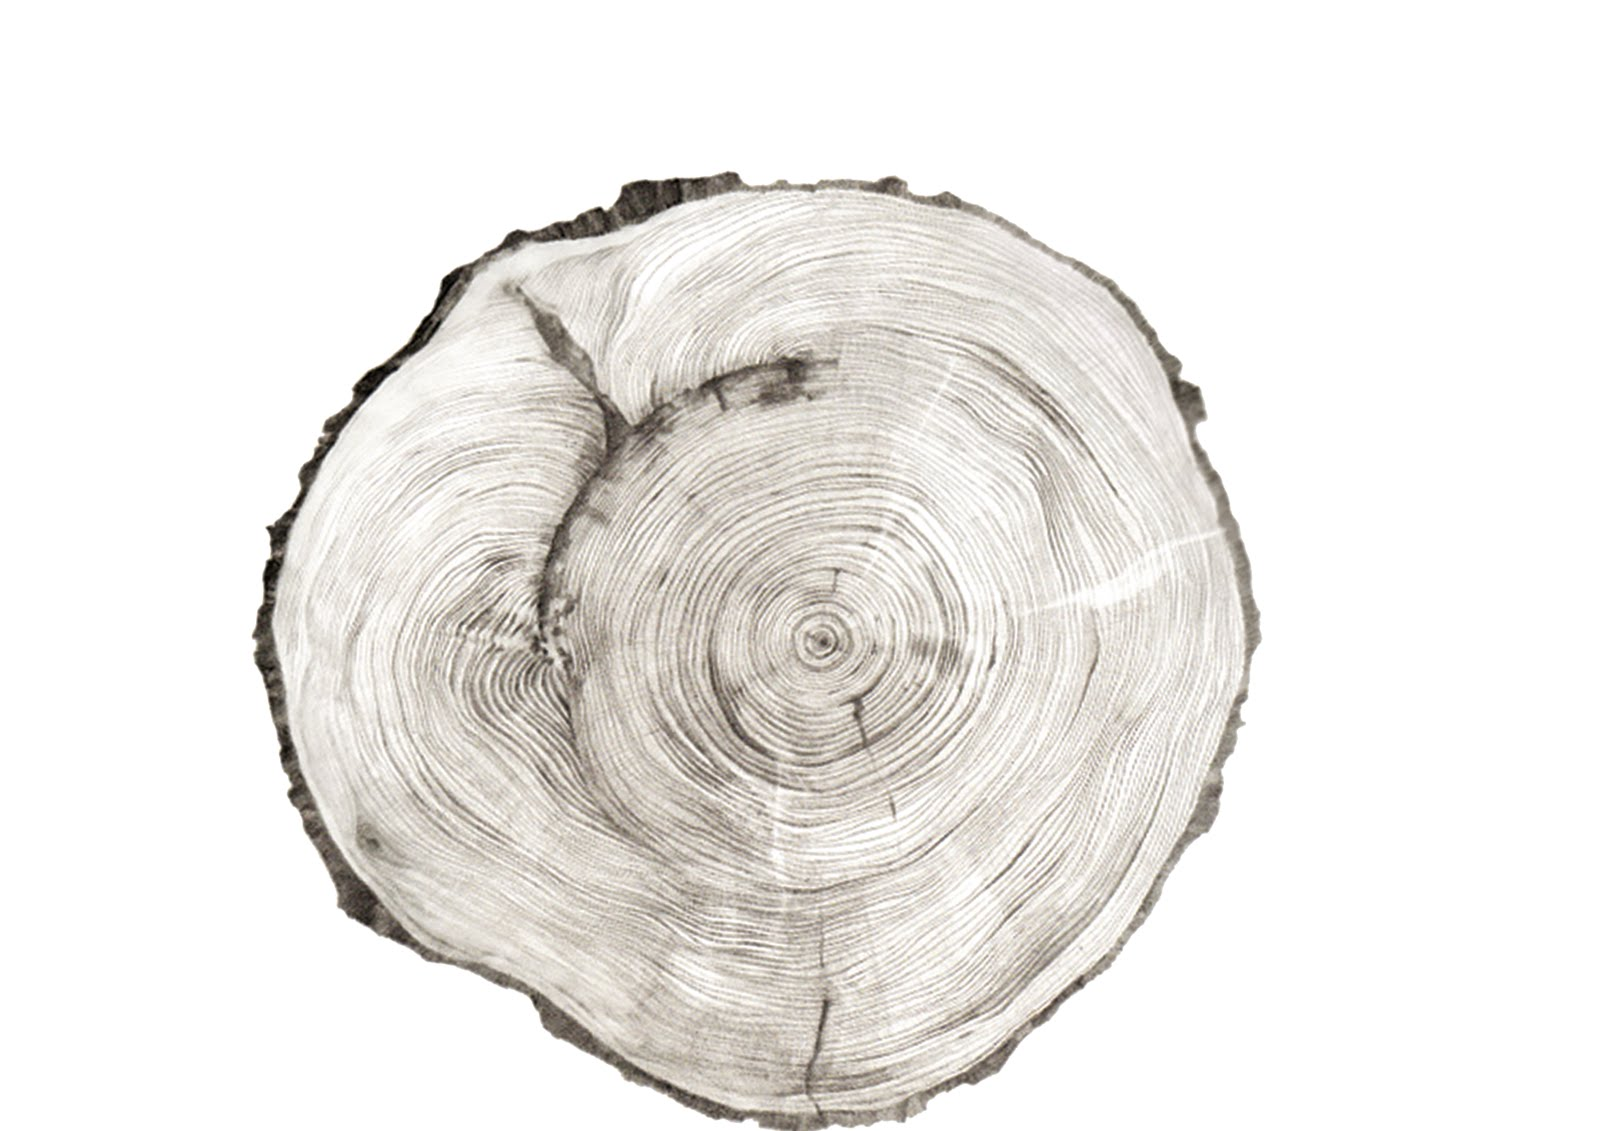 hd wallpapers tree stump coloring page dig earecom press